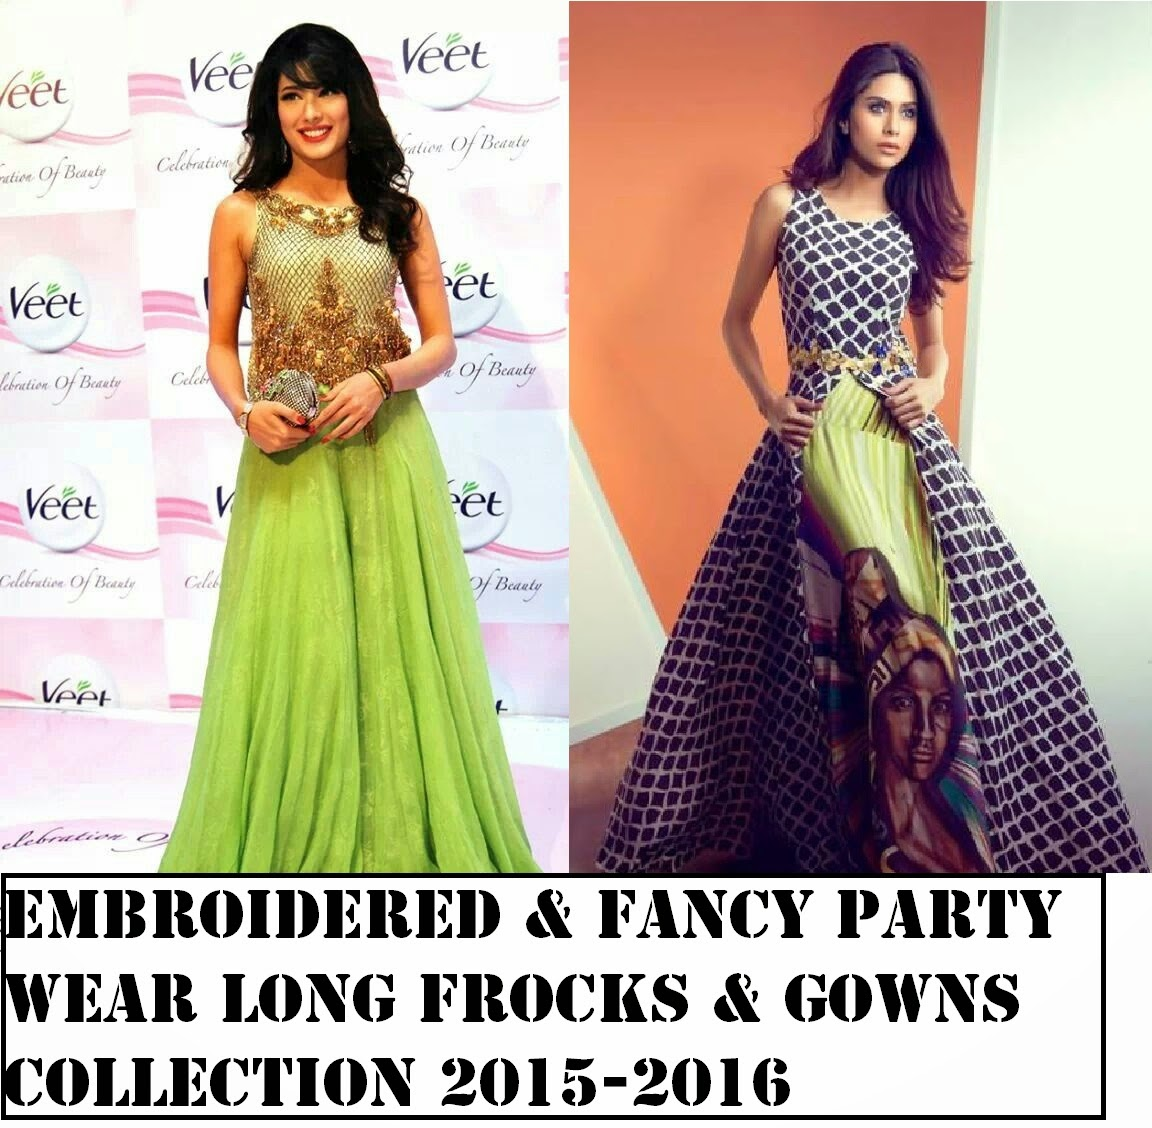 Embroidered Amp Fancy Party Wear Long Frocks Amp Gowns Collection 2015